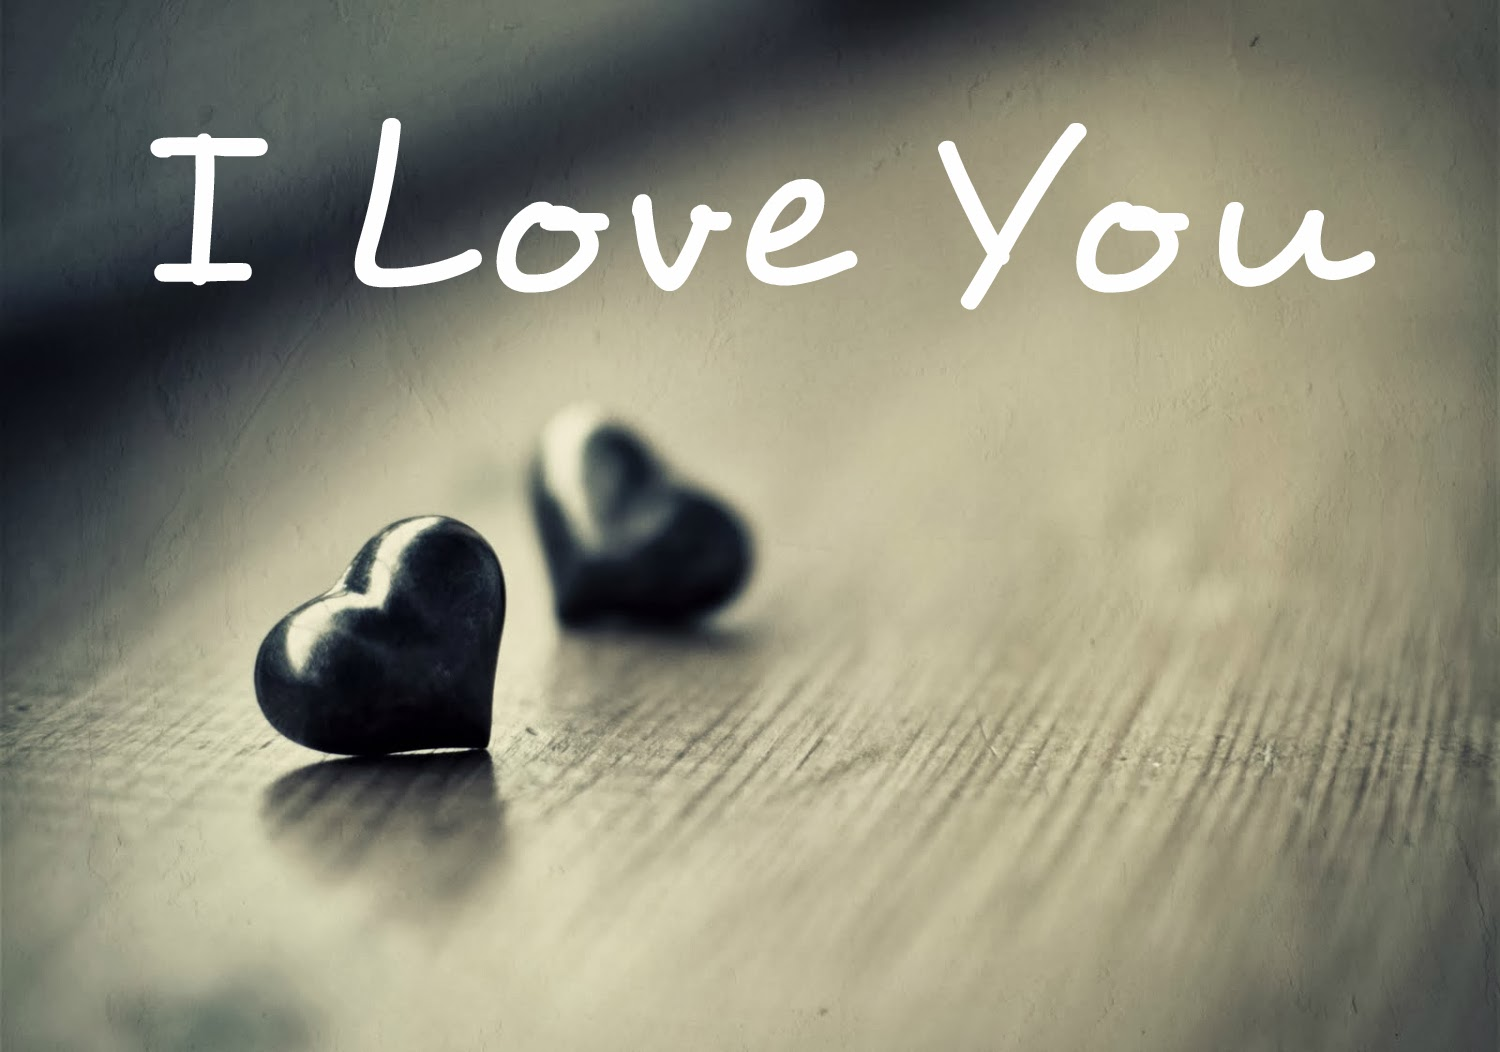 Hd wallpaper i love you - Happy Valentines Day I Love You Wallpaper Hd Free Download